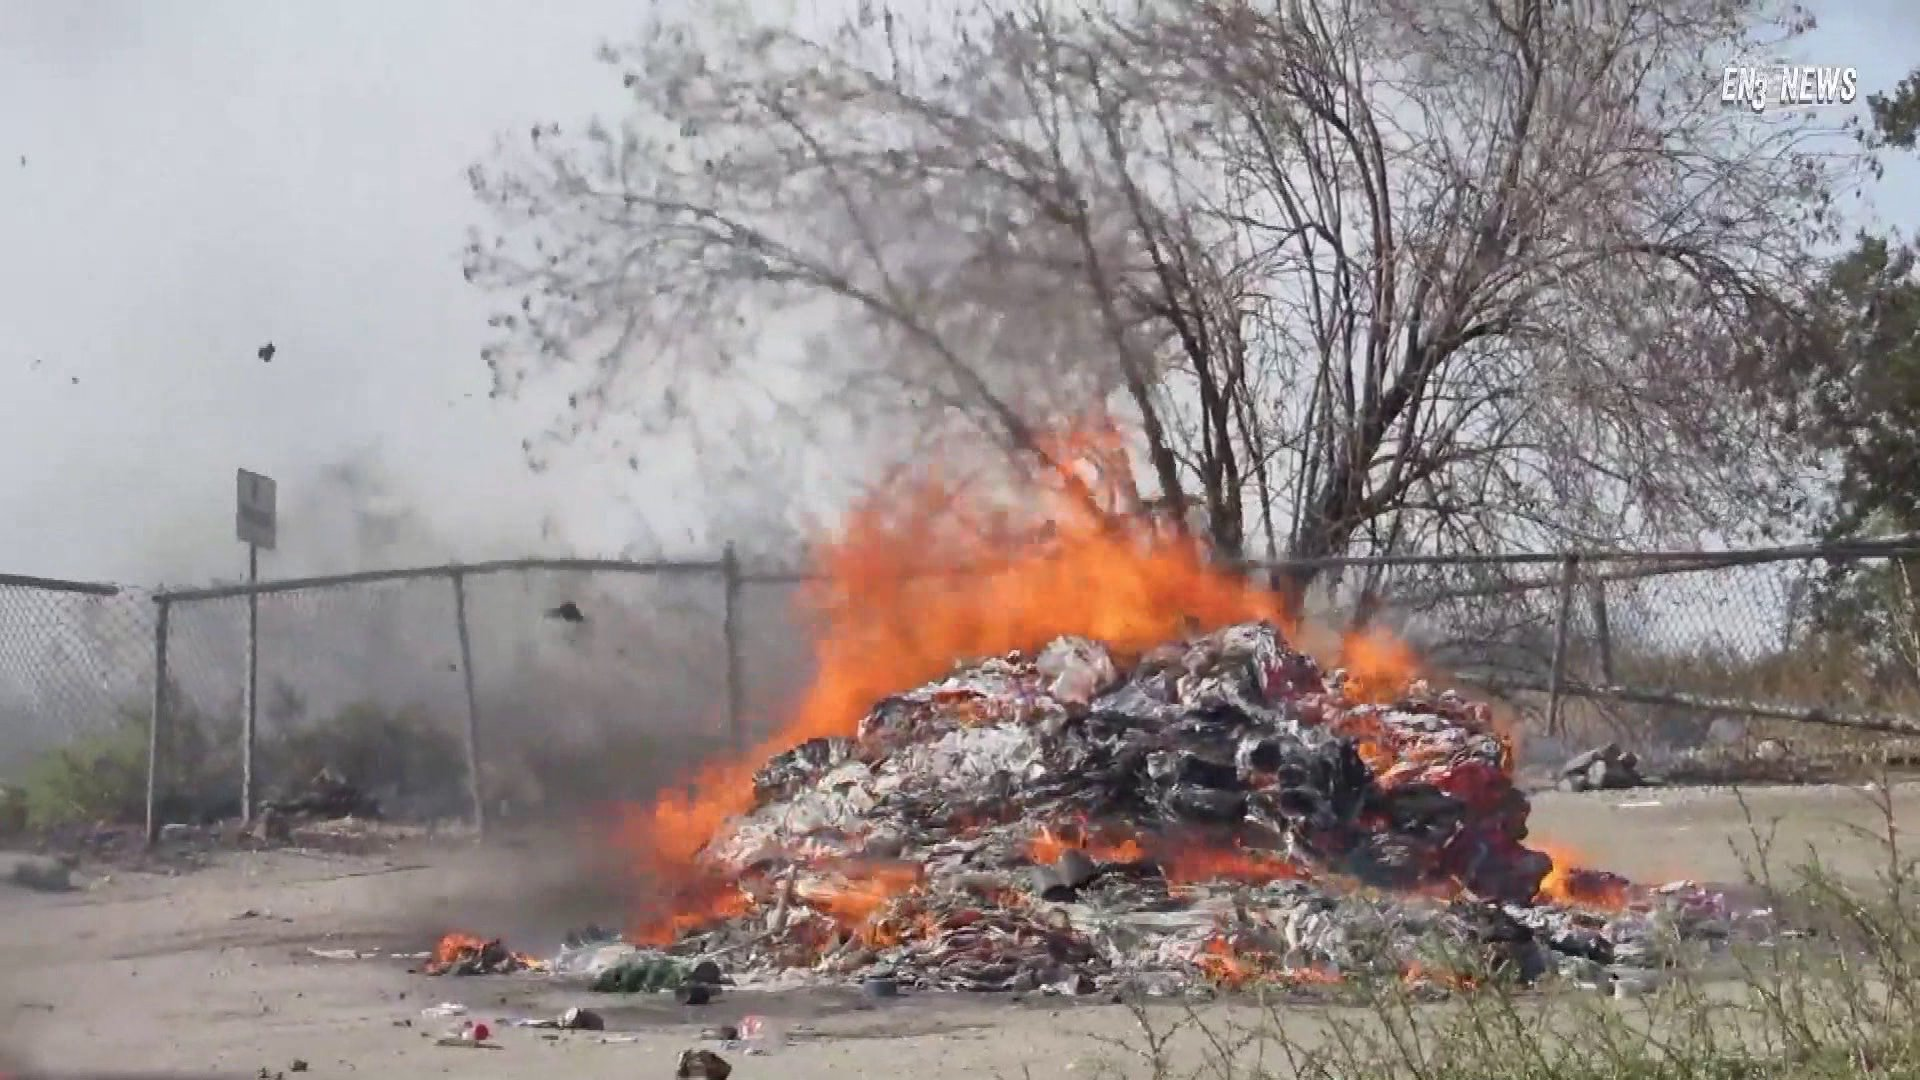 The spot where a garbage truck dumped a burning load, sparking the Sandalwood Fire that destroyed several residences in Calimesa on Oct. 10, 2019. (Credit: KTLA)